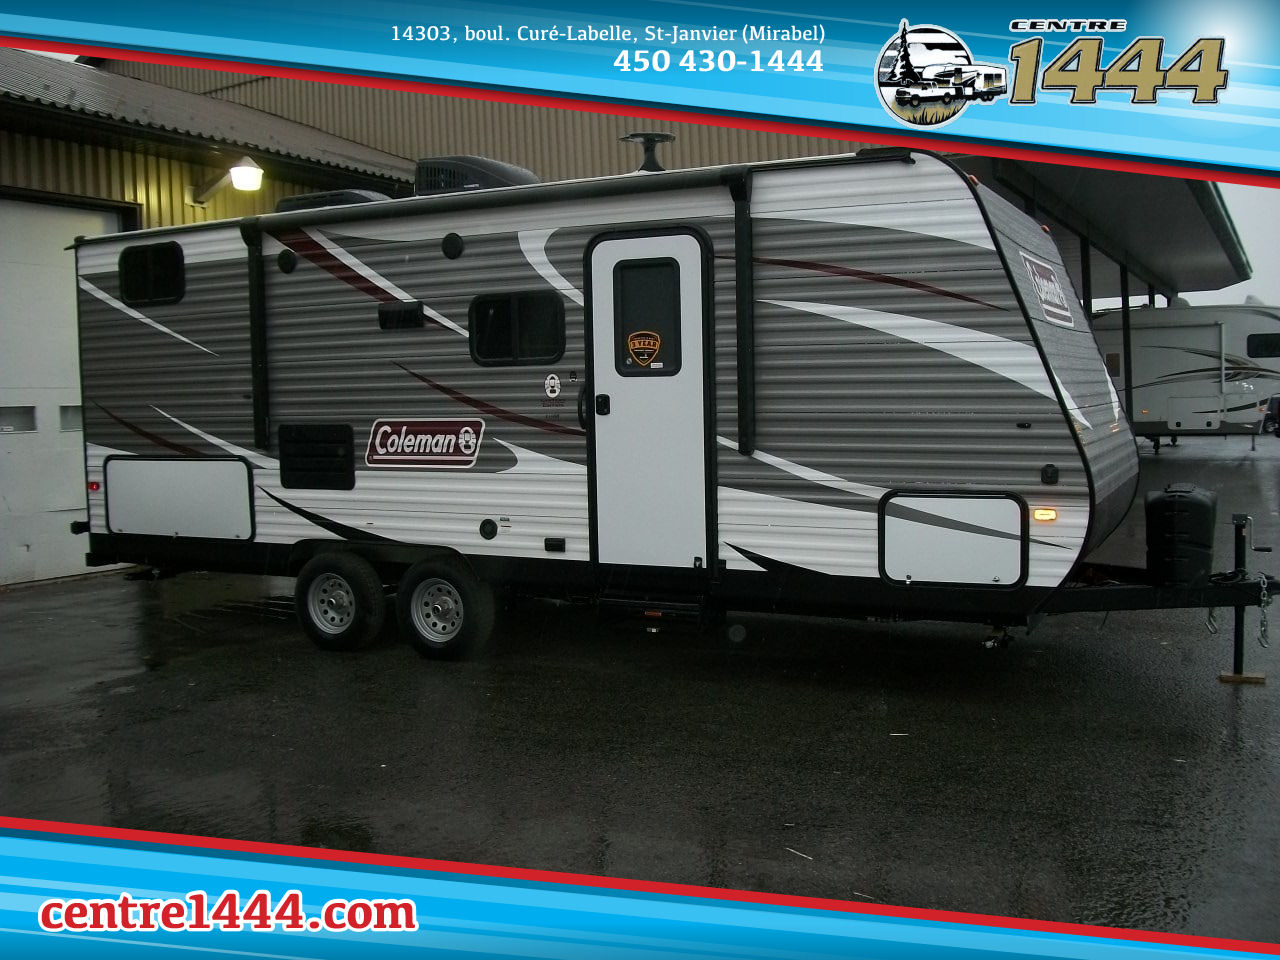 2018 COLEMAN 215 BH - Familiale 8 pers.